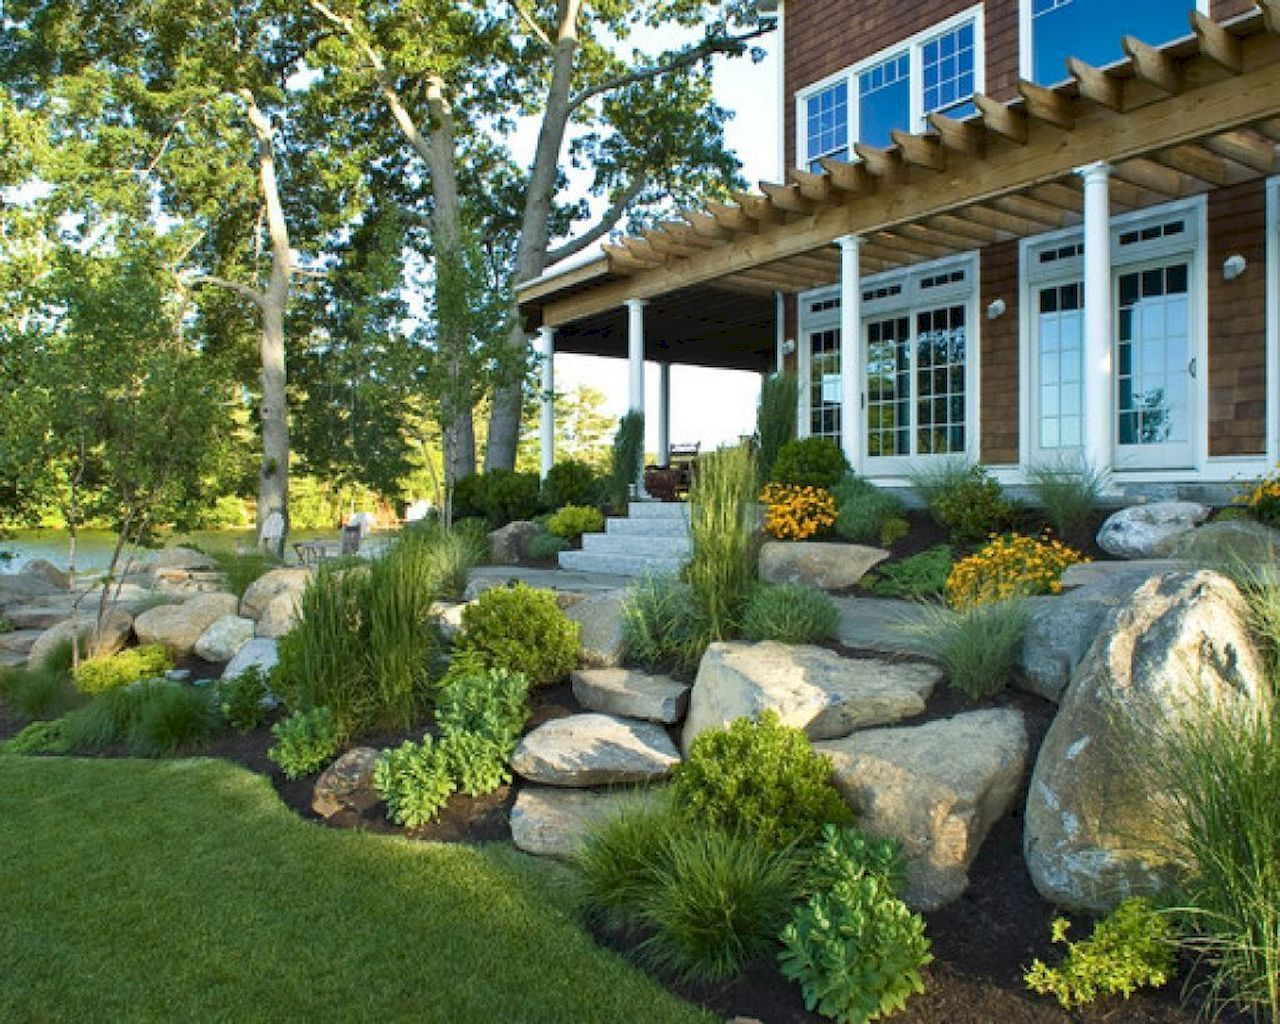 55 green front yard landscaping ideas | landscaping | pinterest